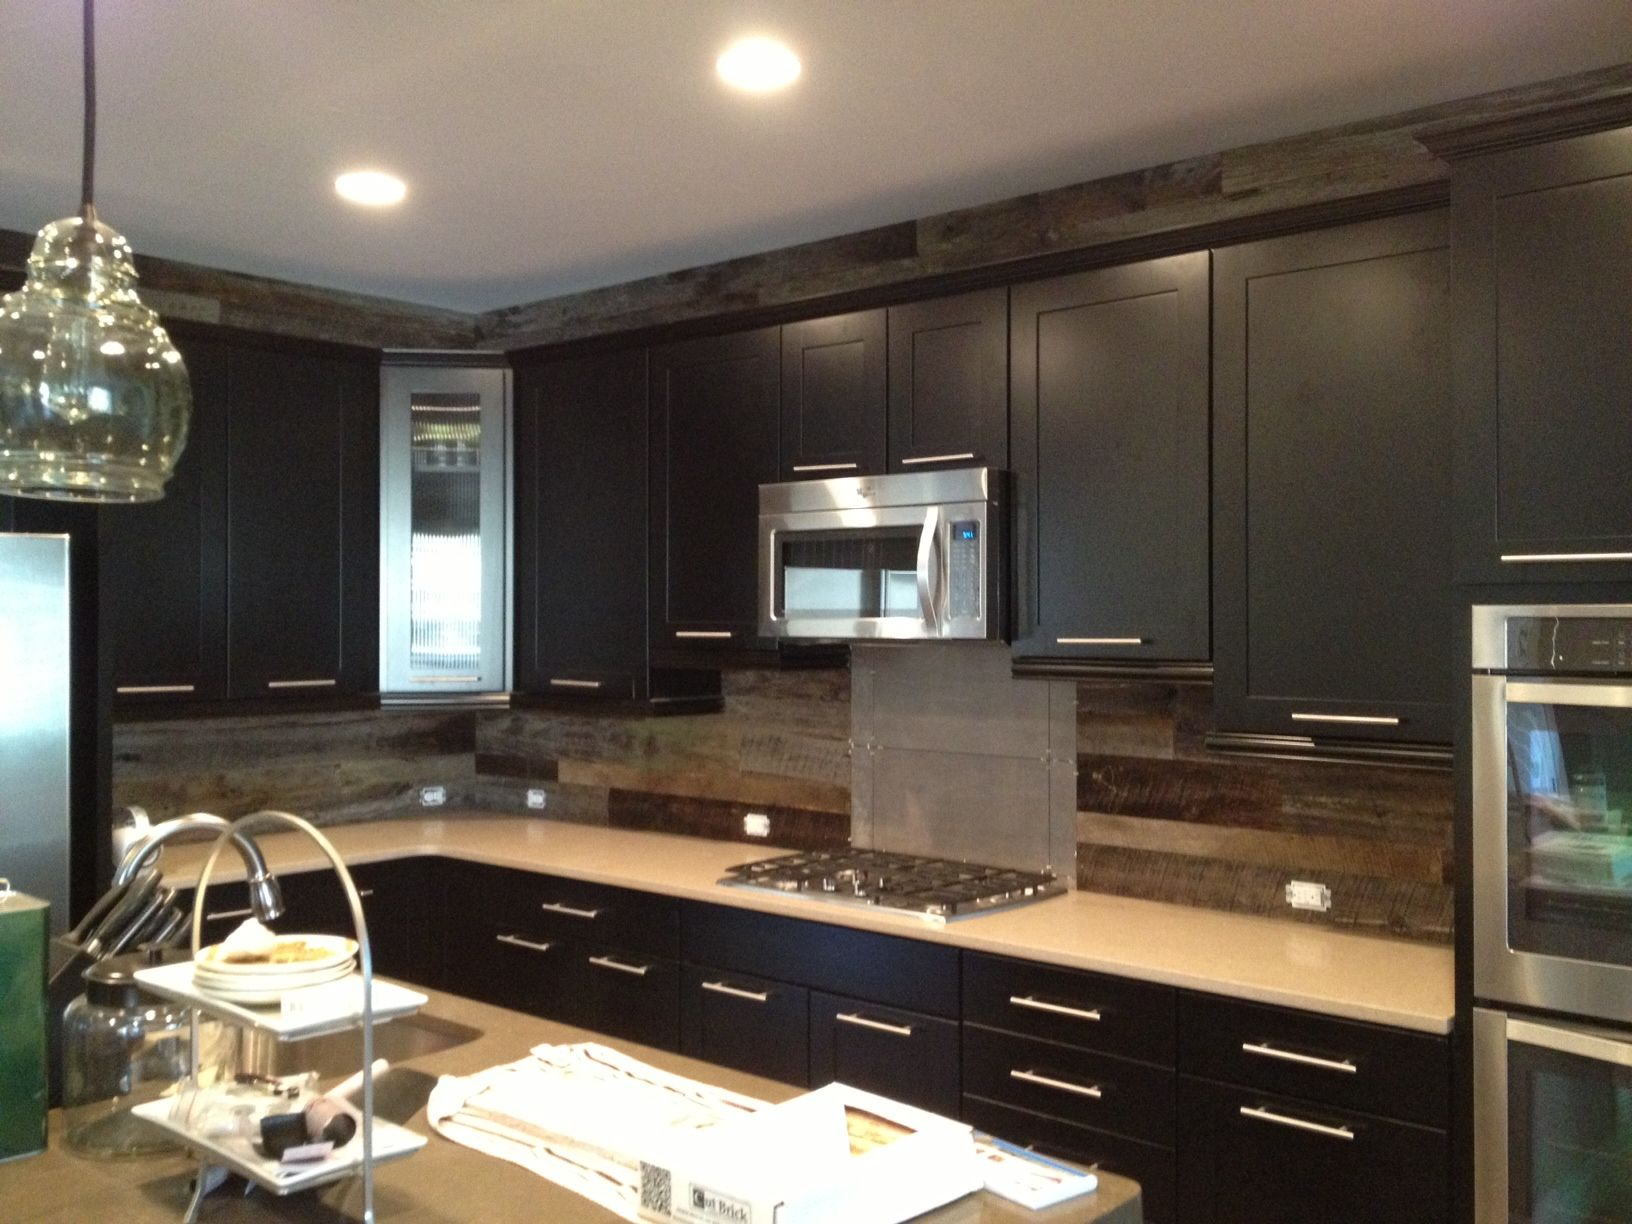 Best Barn Board Siding Is A Great Choice For The Backsplash And 640 x 480